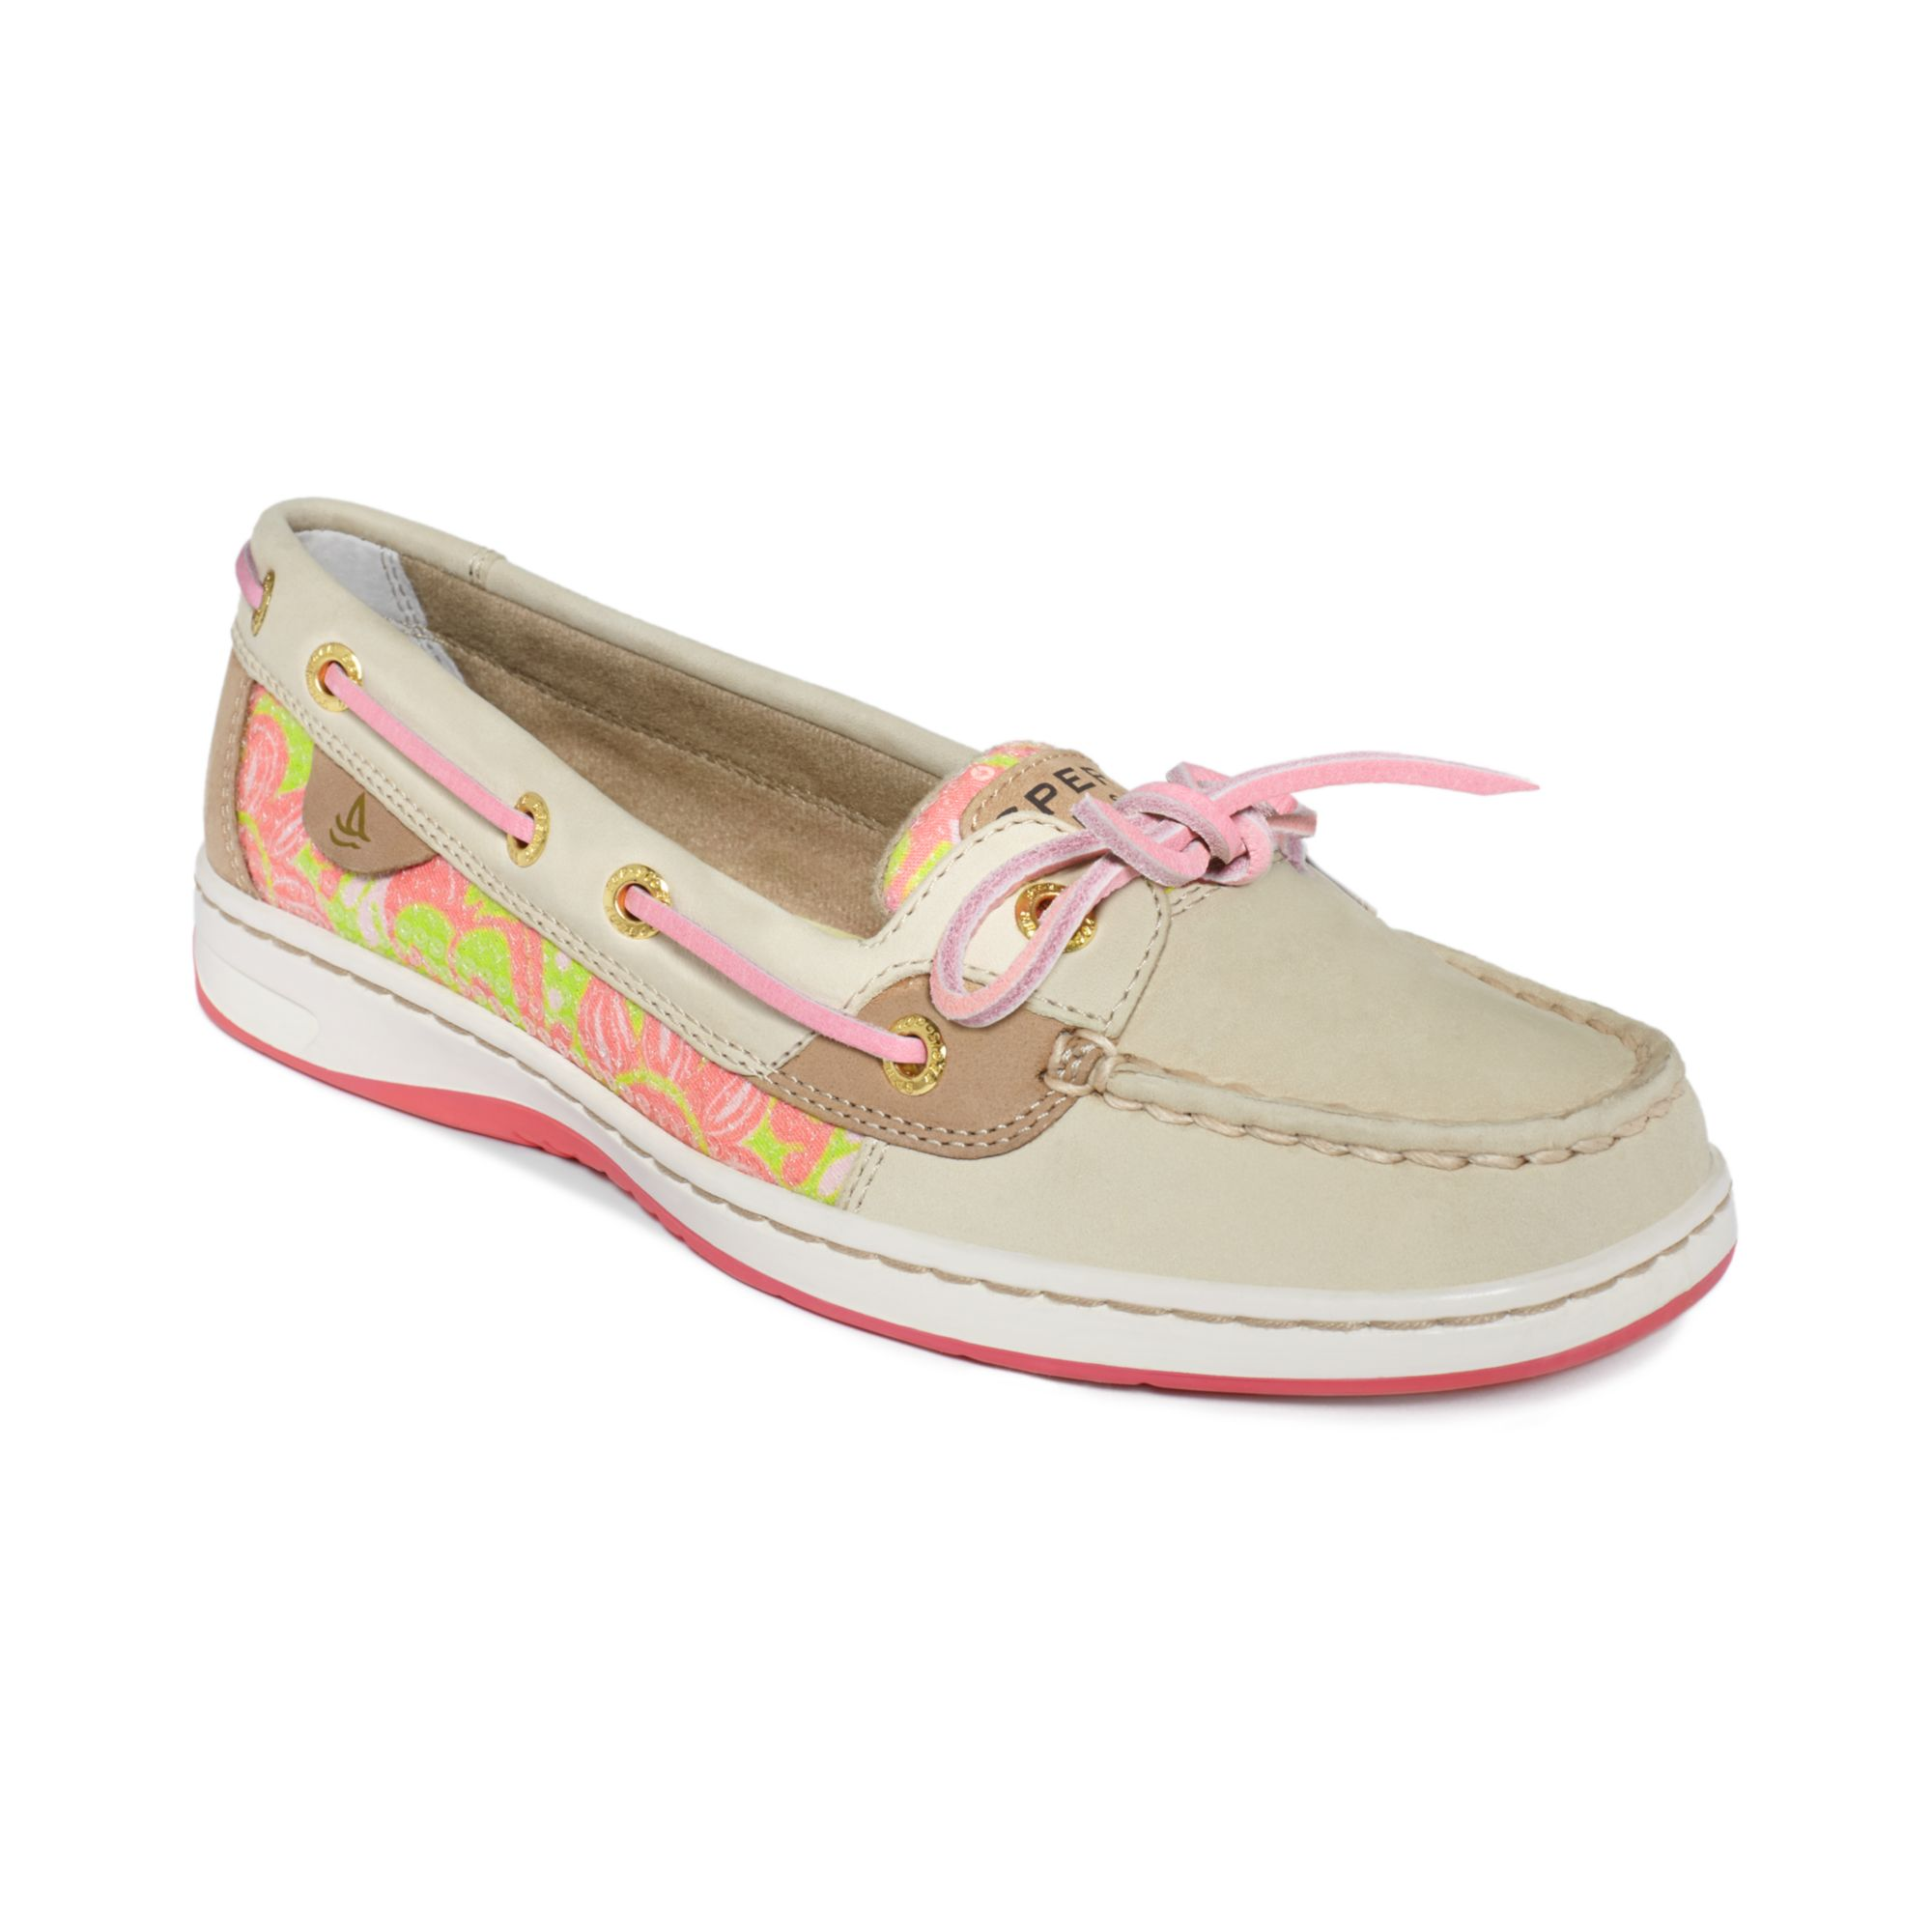 sperry top sider womens angelfish boat shoes in beige oat